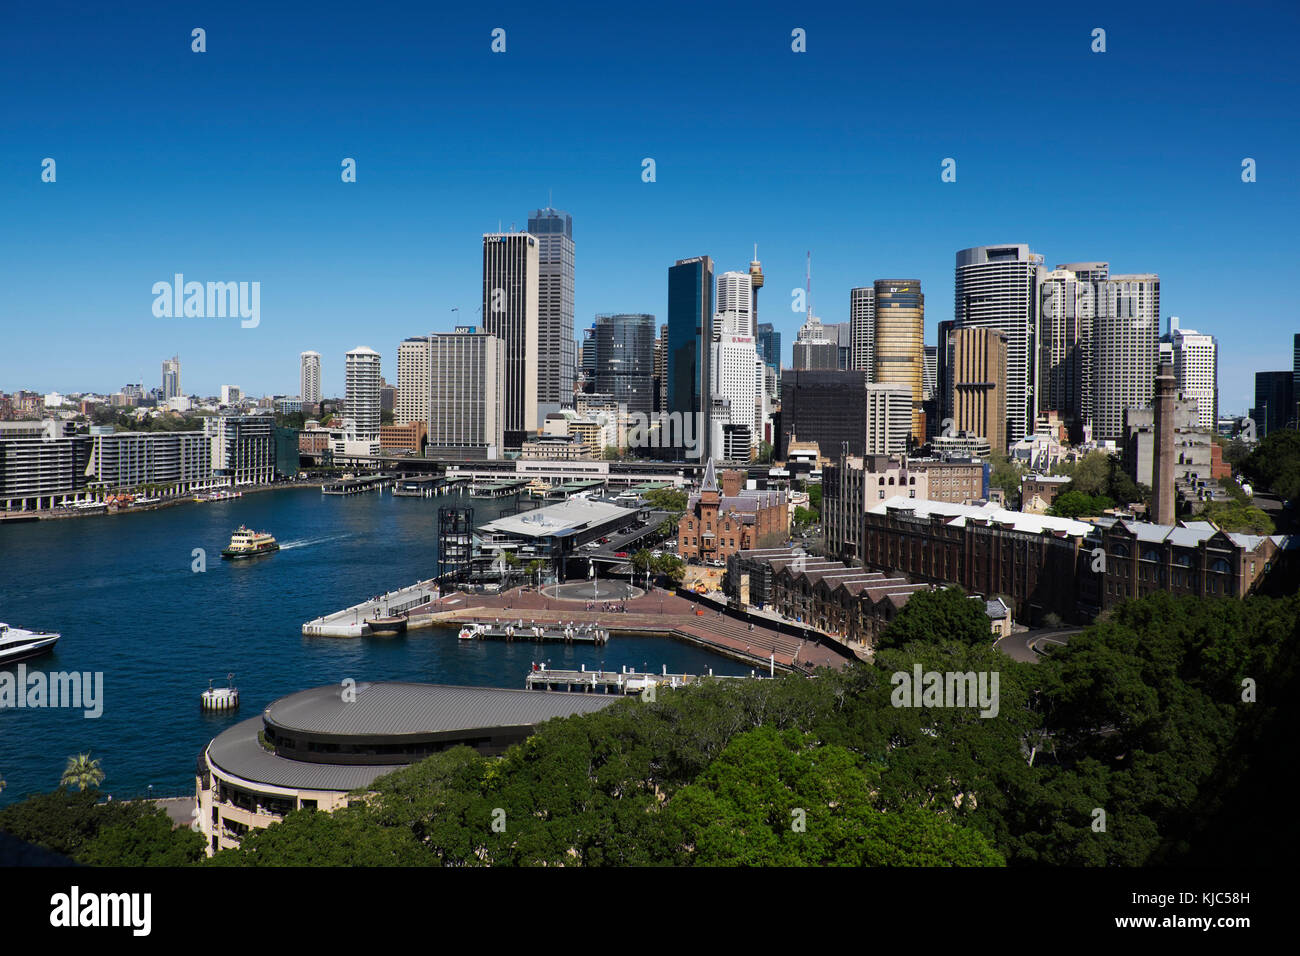 Overview of Circular Quay and skyline of Sydney, Australia - Stock Image